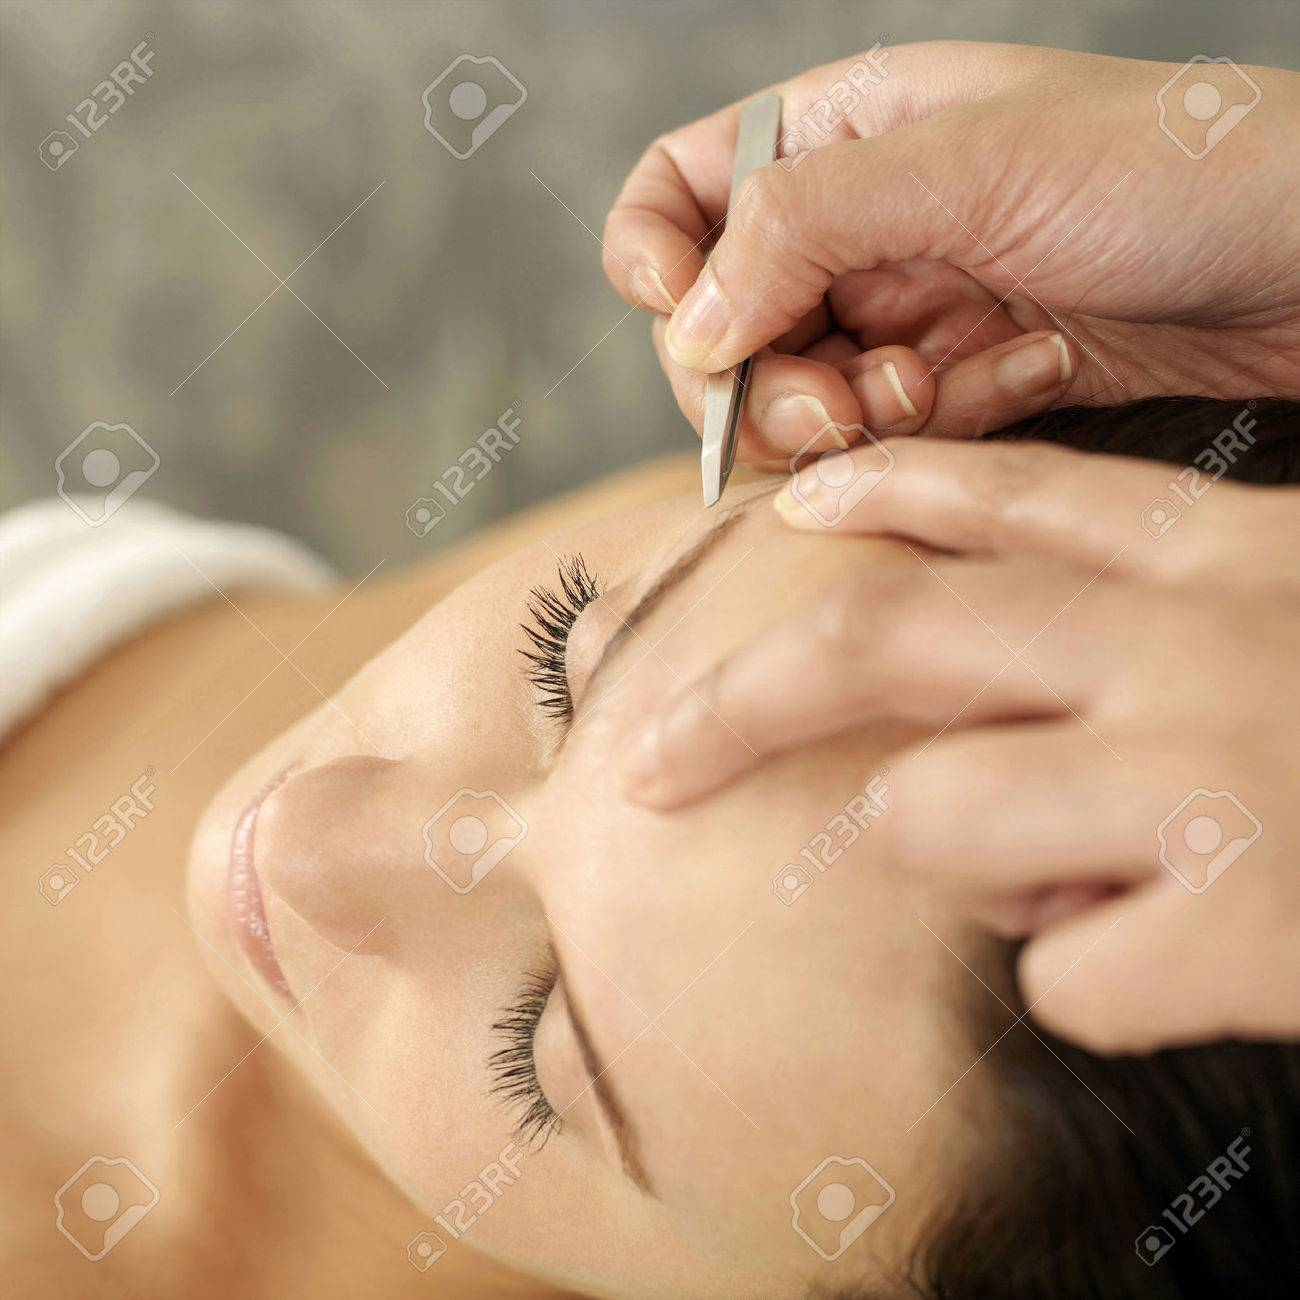 Hand tweezing woman's eyebrow Stock Photo - 26265129